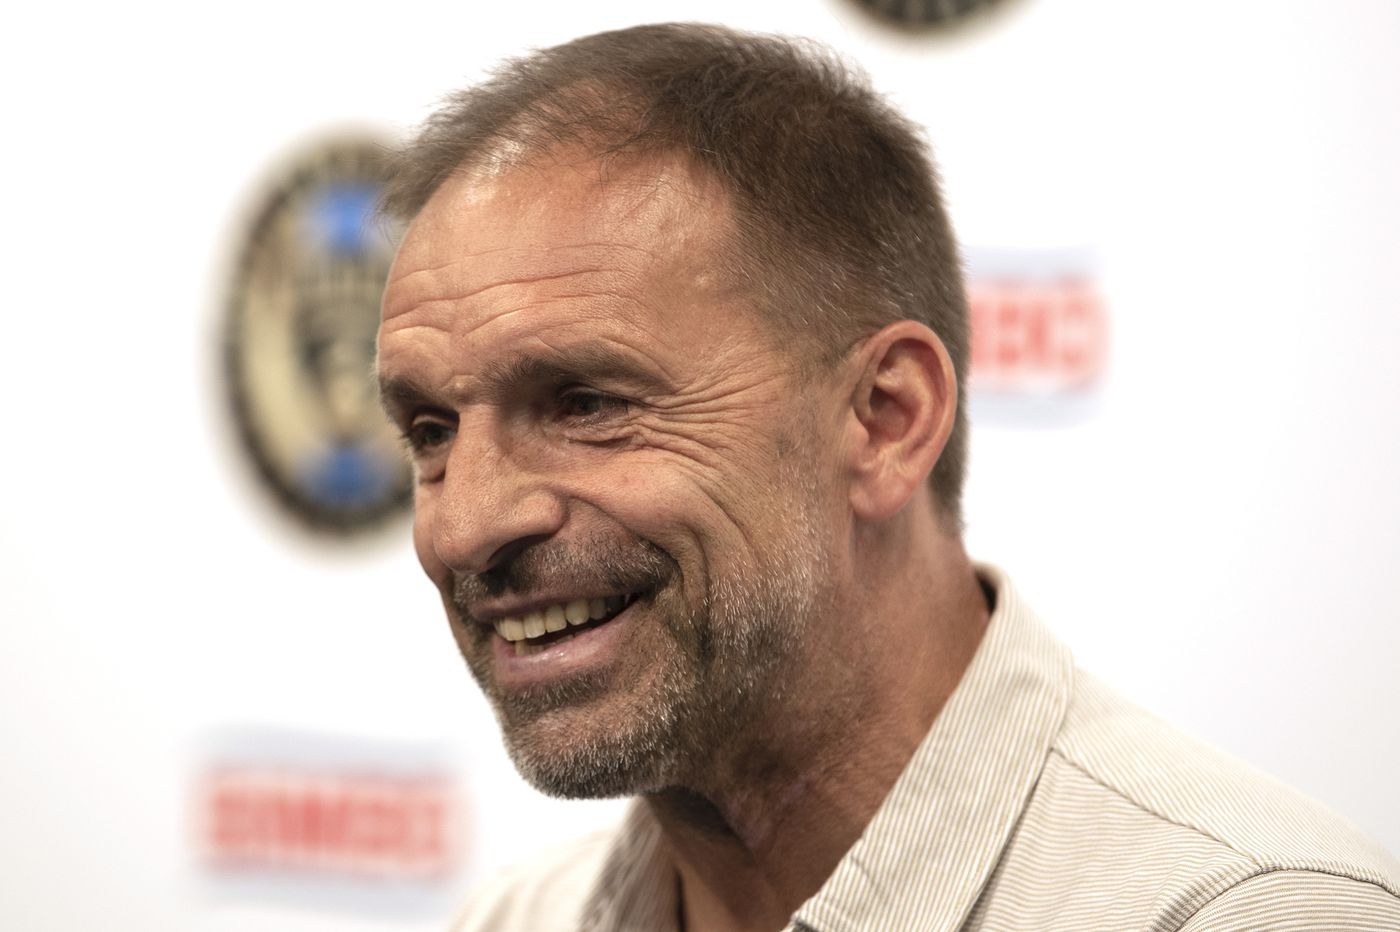 Ernst Tanner wants the Union to play 'proactive' soccer, and wants to re-sign Borek Dockal